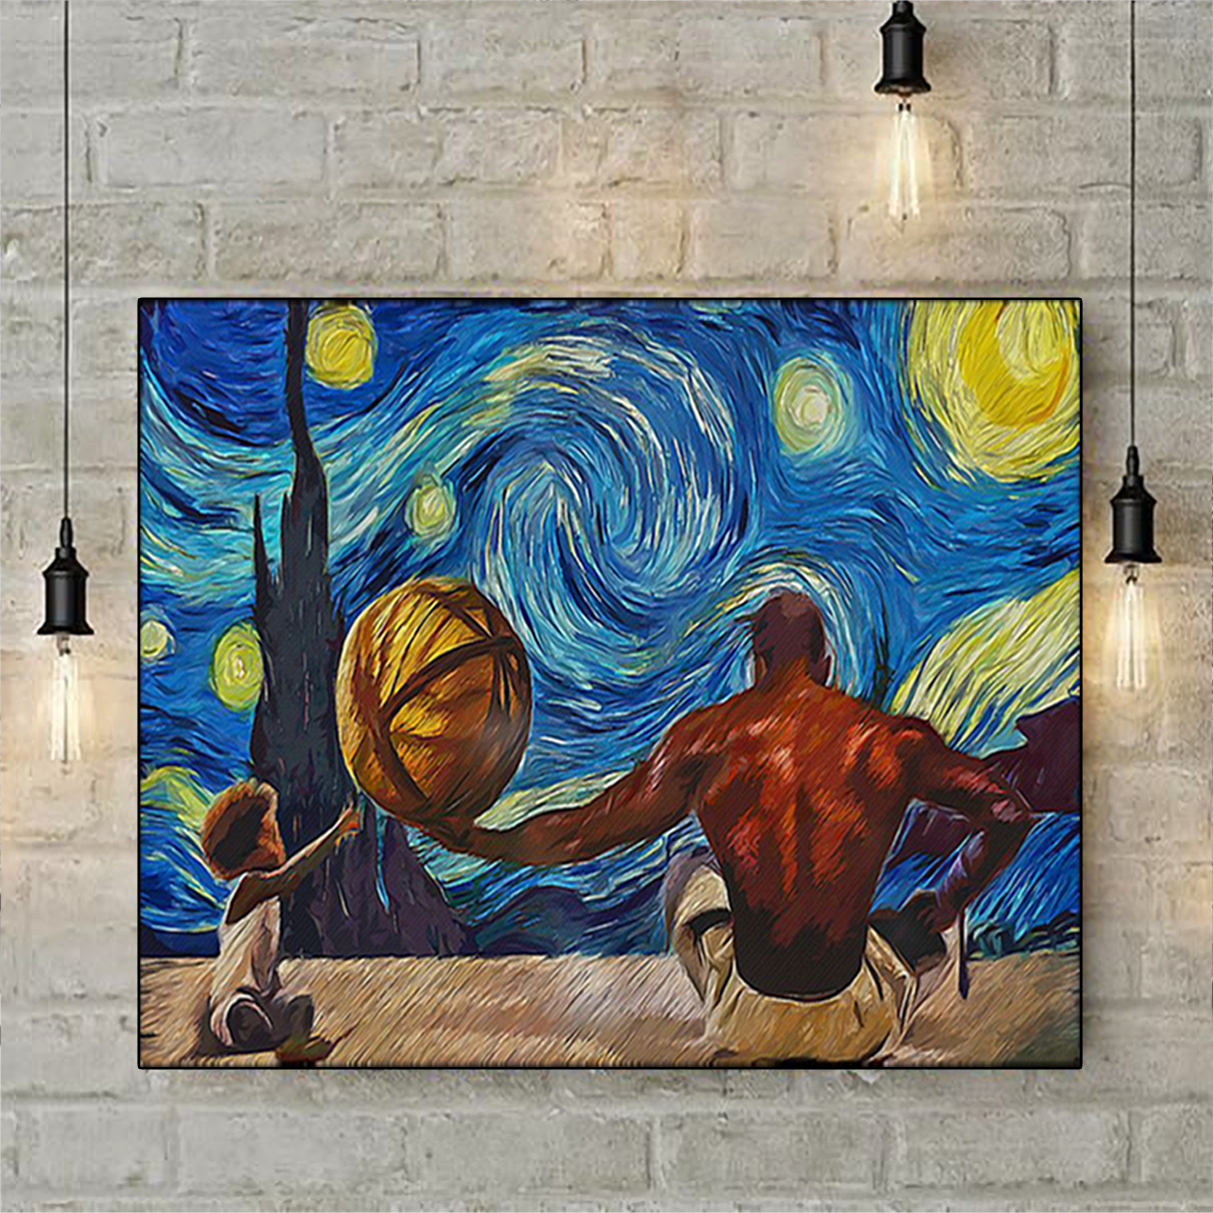 Black father and son starry night van gogh poster A1